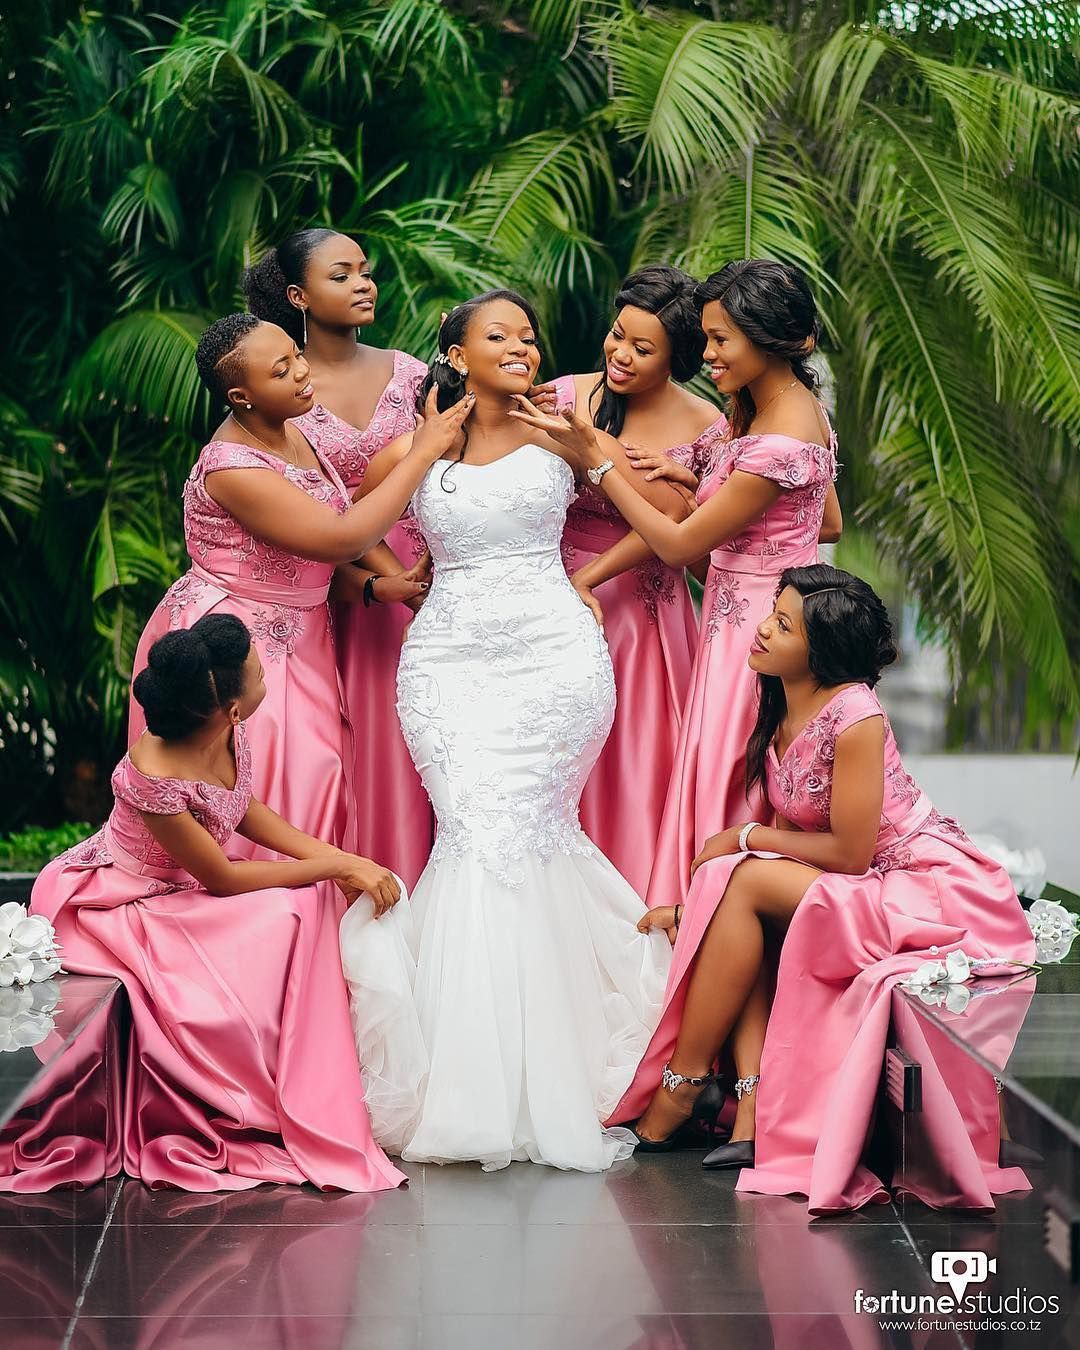 Wedding party poses - Best 100 poses for any wedding